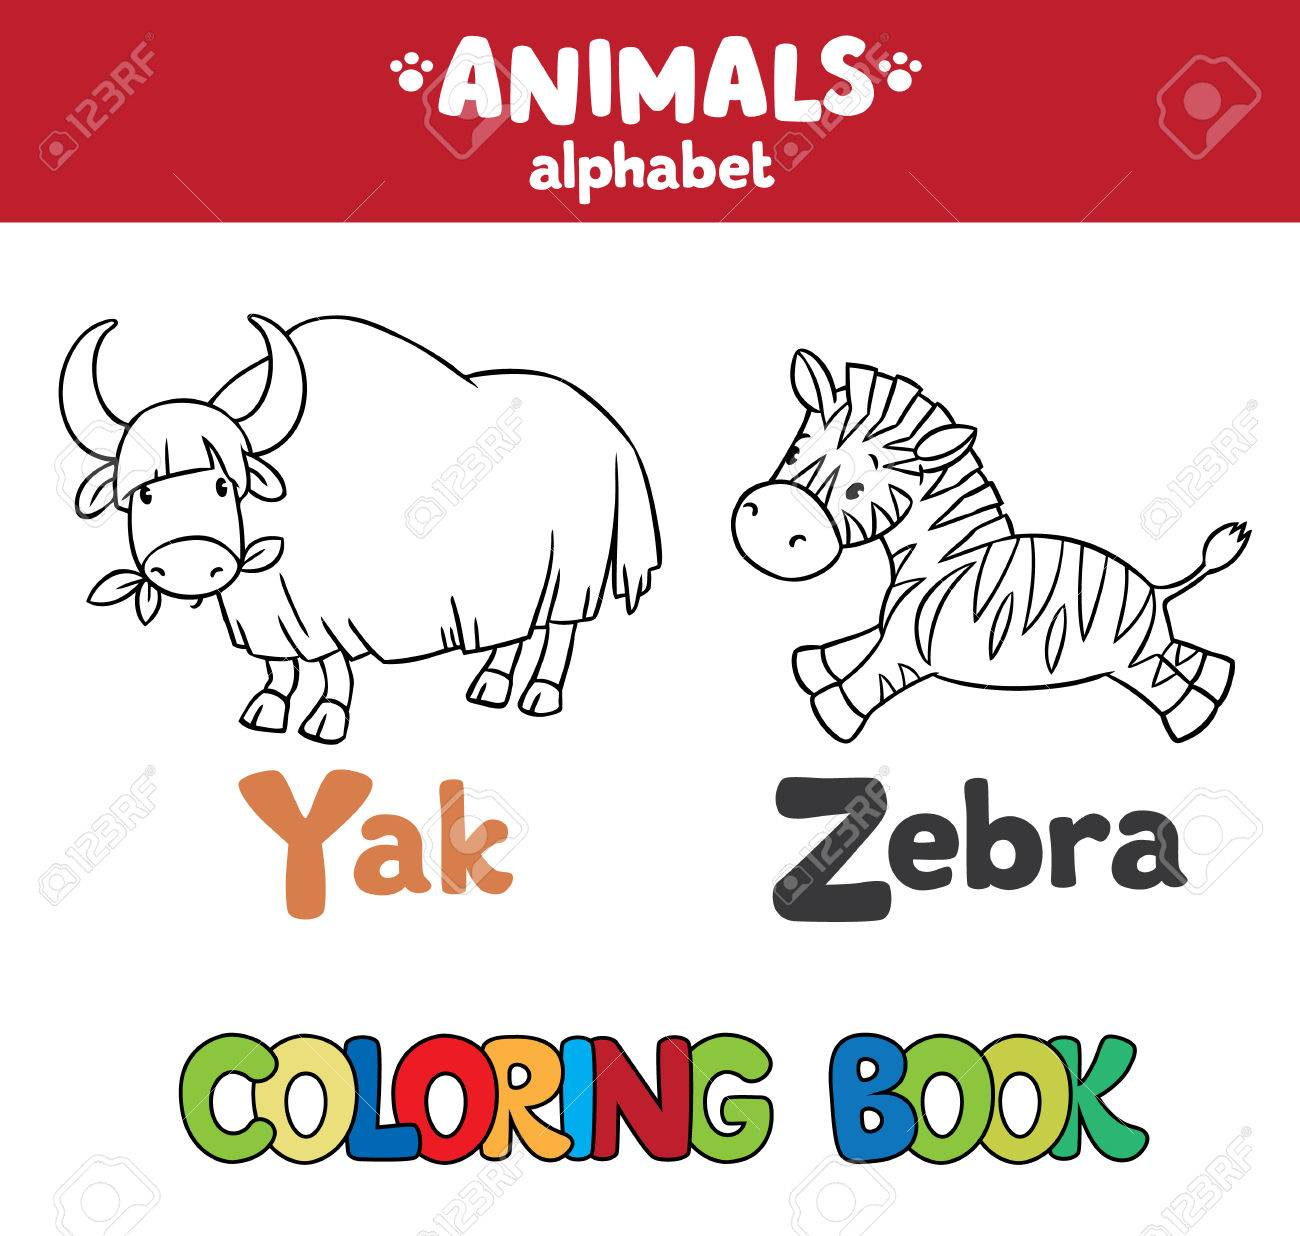 Coloring Book Or Coloring Picture Of Funny Yak And Zebra Animals